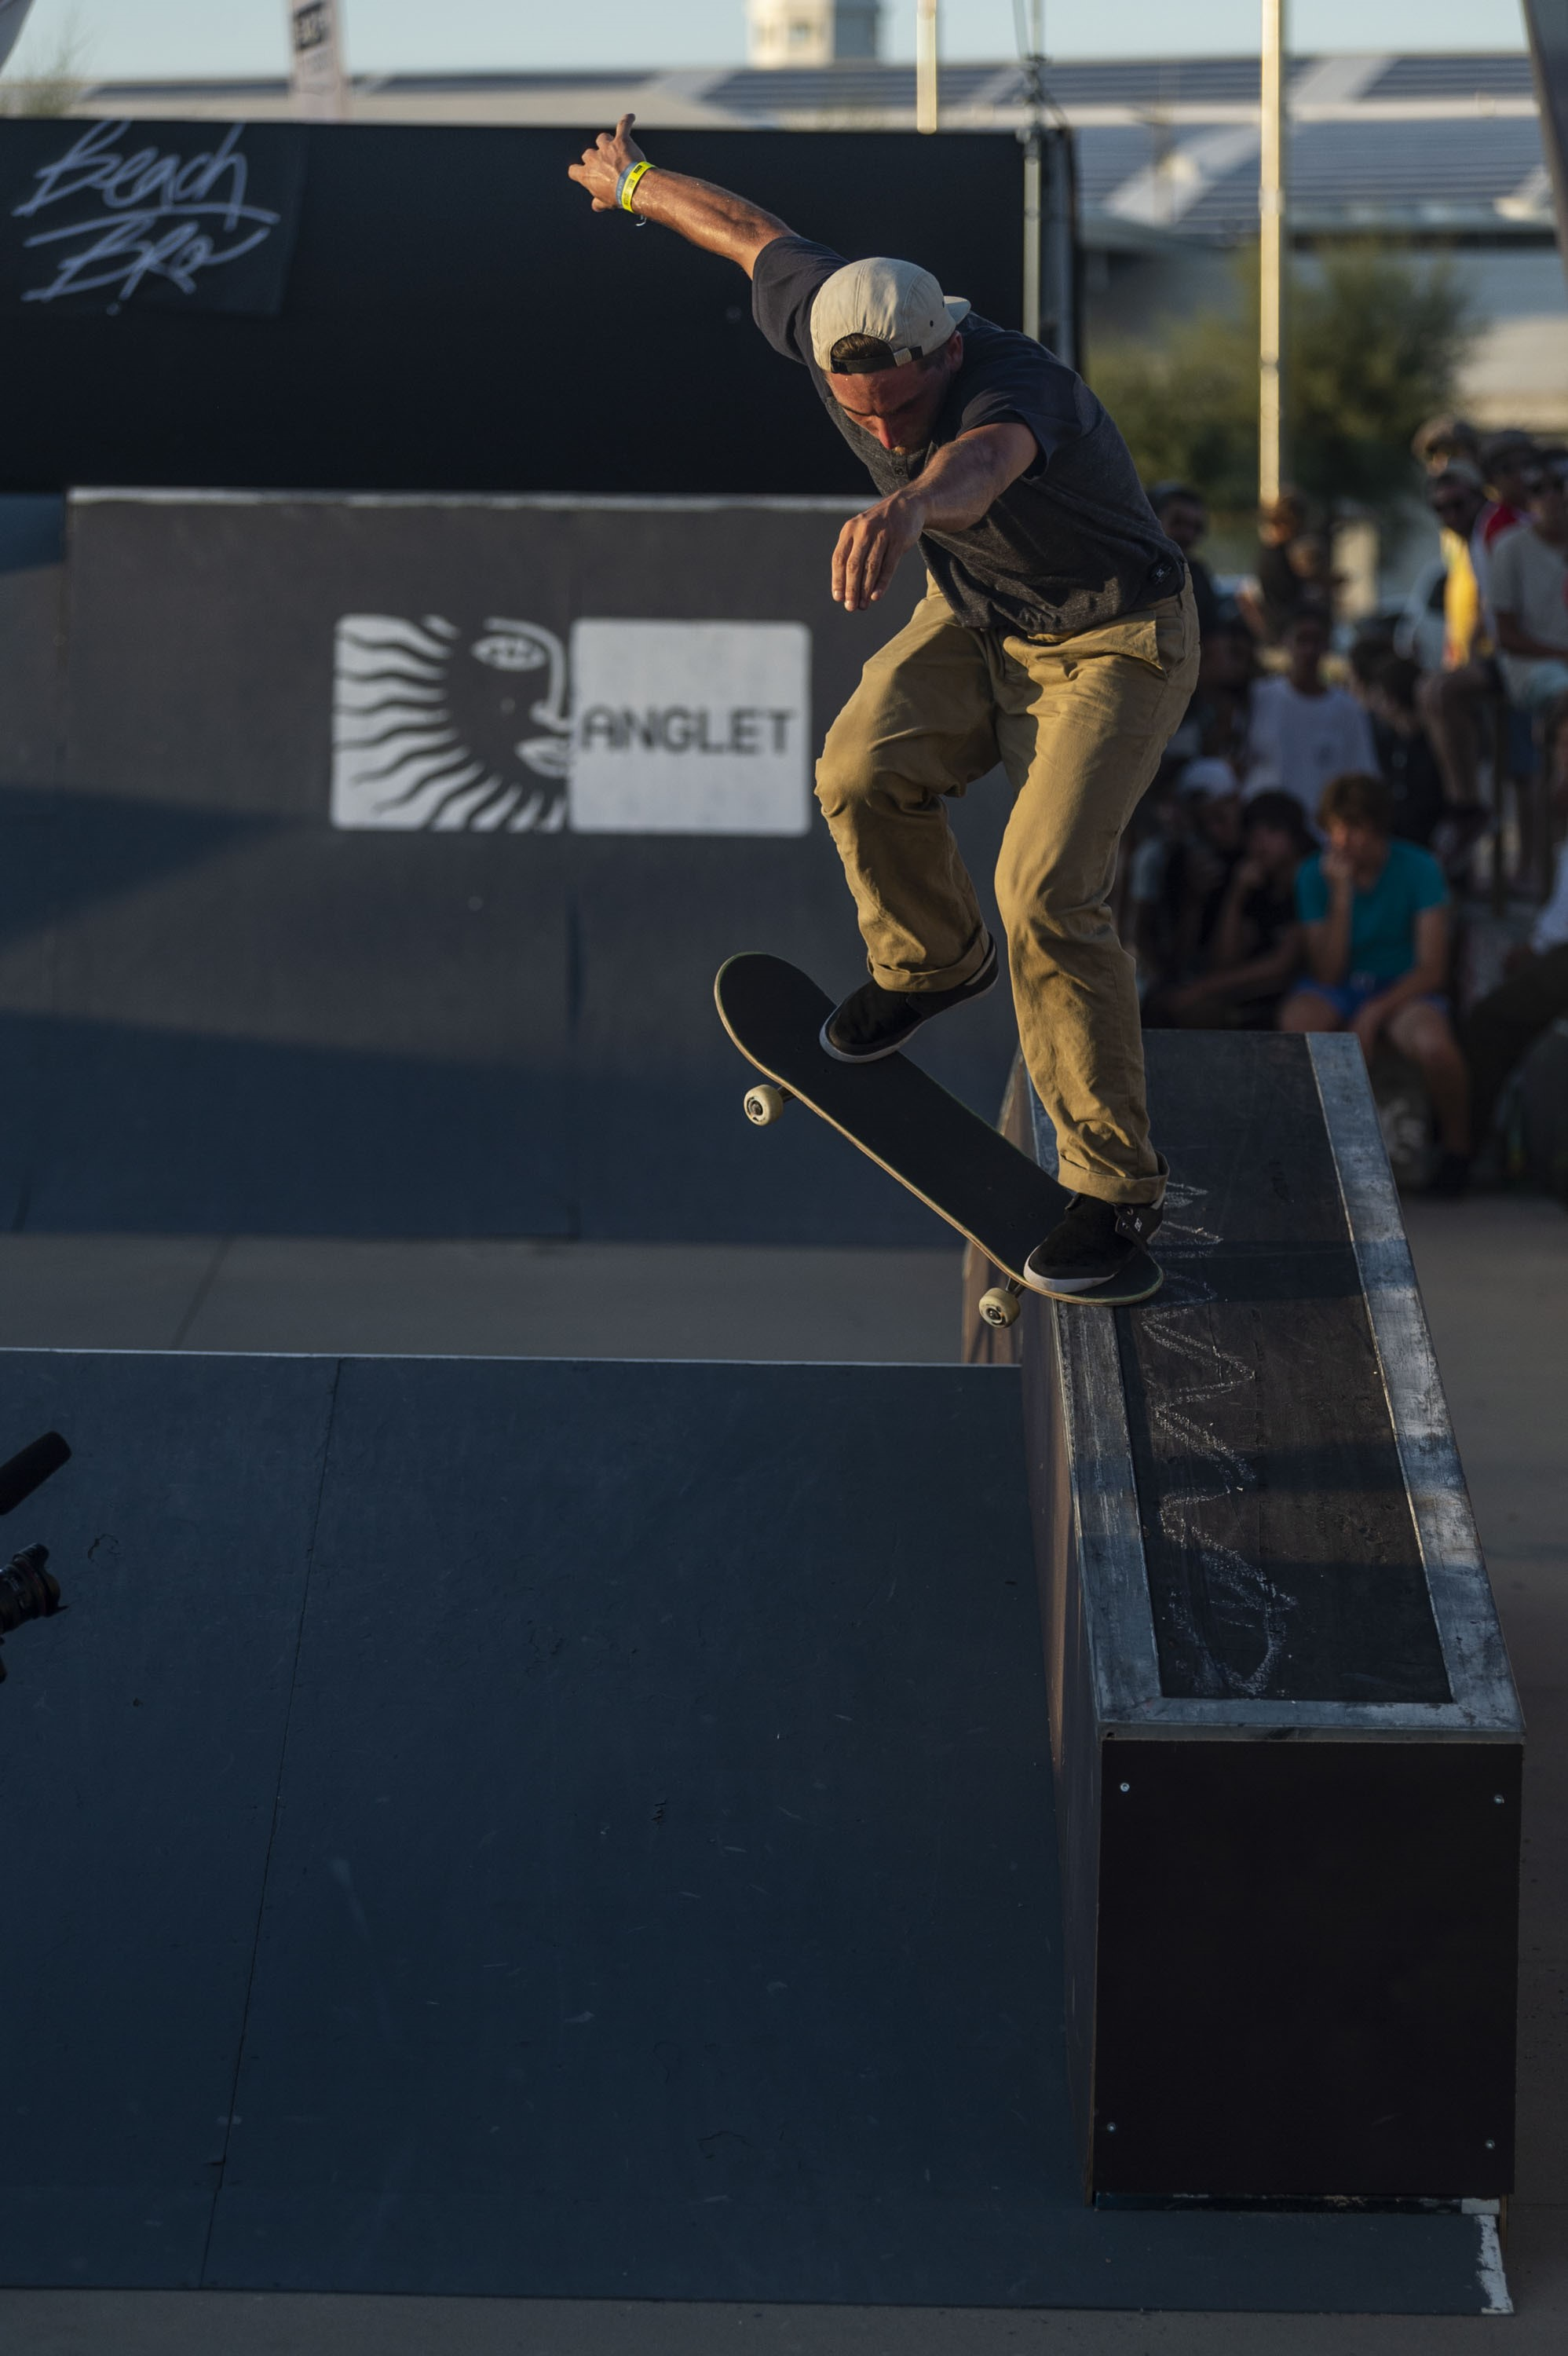 FISE Experience Anglet 2018